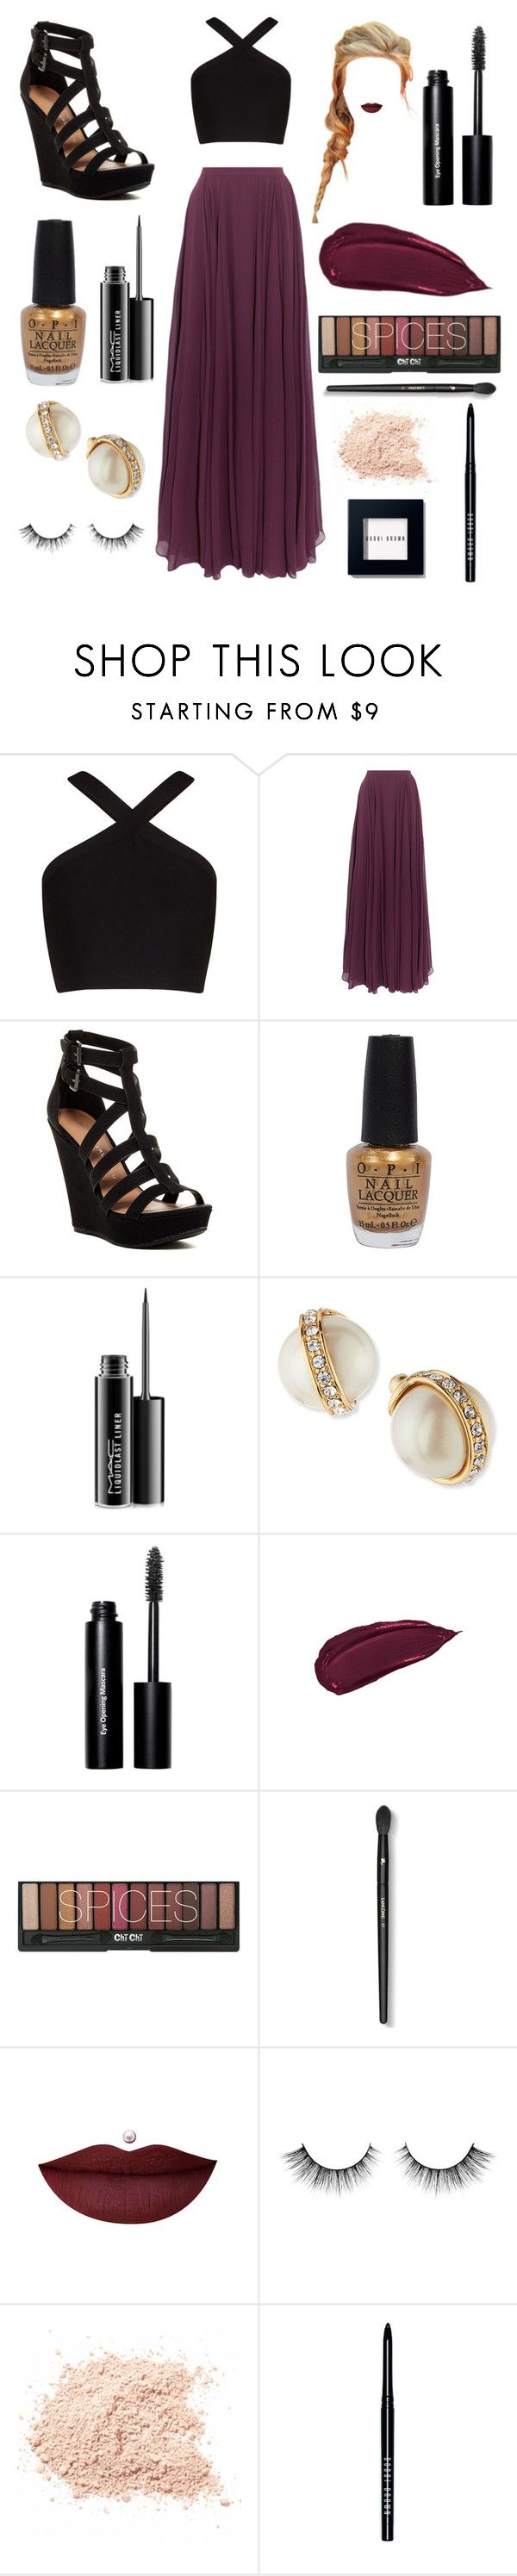 """""""Untitled #98"""" by mcvolleyball72 ❤ liked on Polyvore featuring BCBGMAXAZRIA, Halston Heritage, Chinese Laundry, OPI, MAC Cosmetics, Kate Spade, Bobbi Brown Cosmetics and Lancôme"""